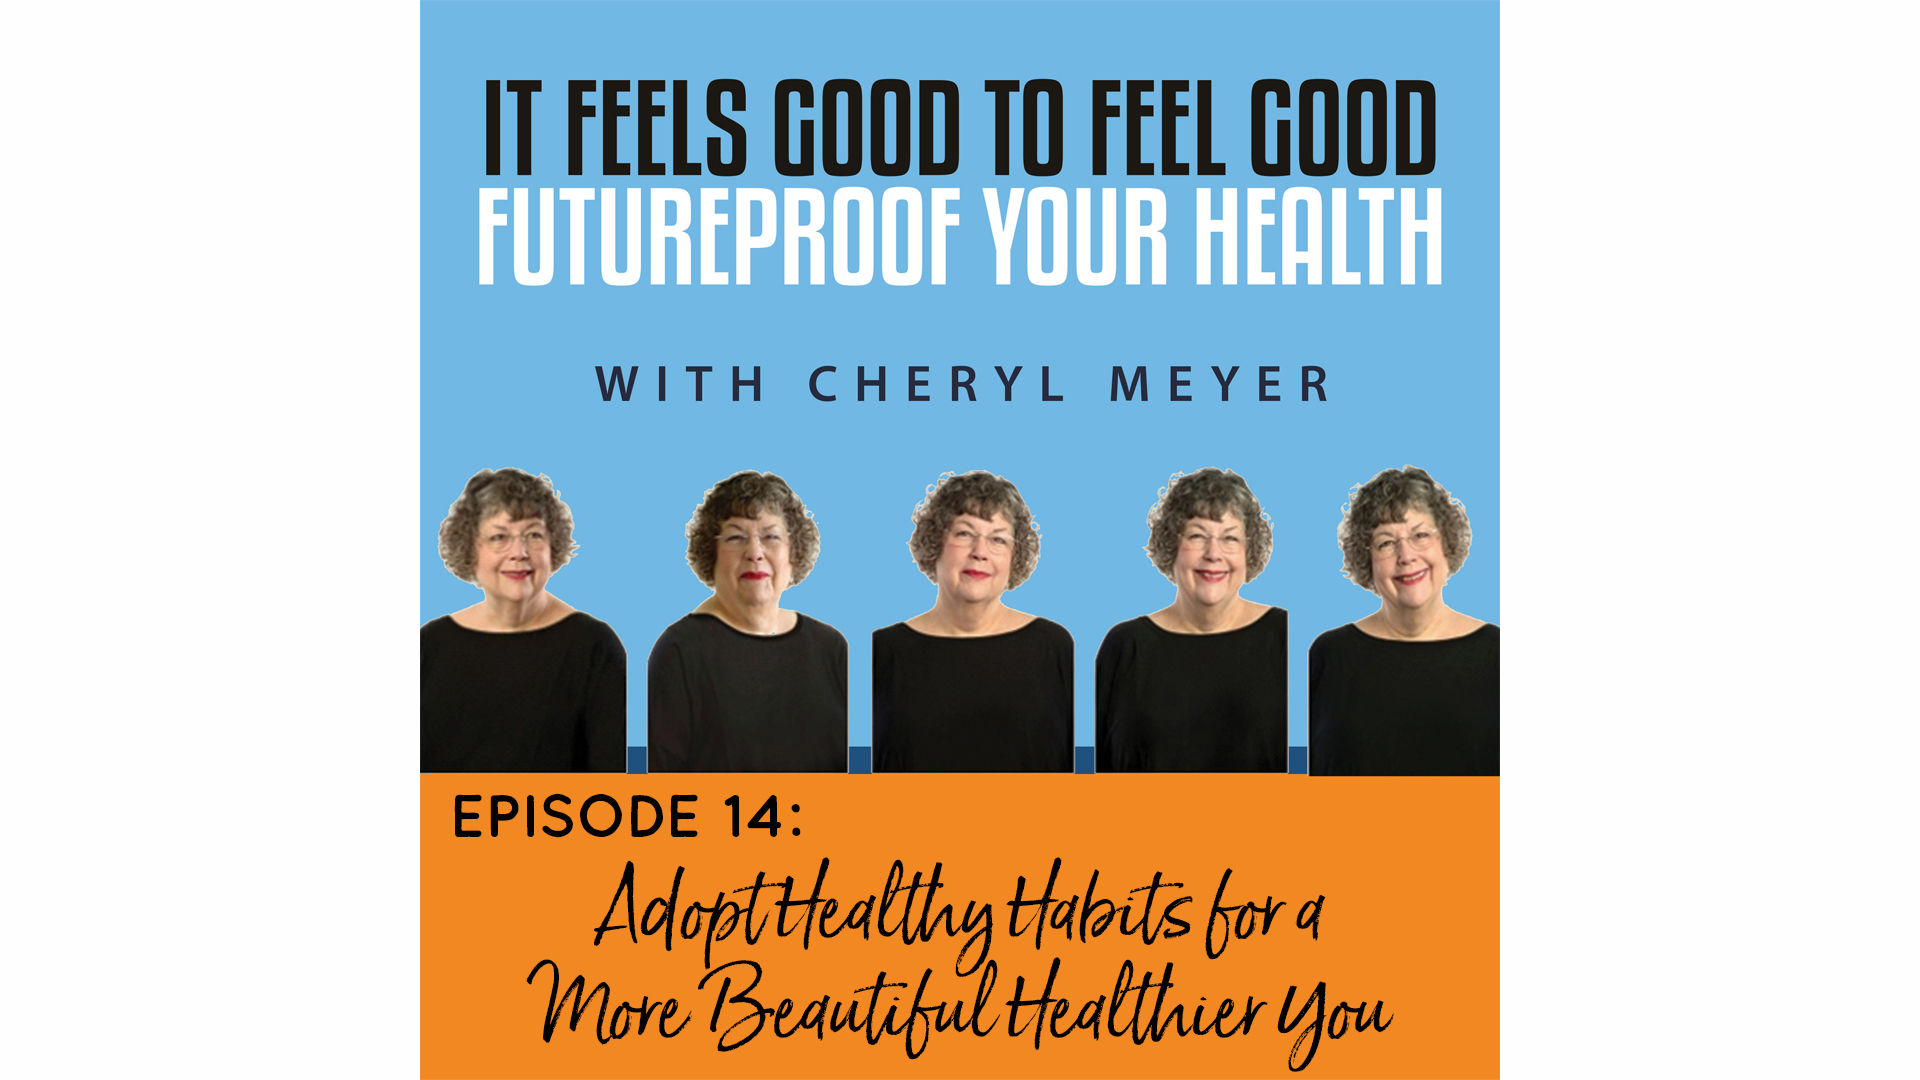 Adopt Healthier Habits for a New Beautiful You